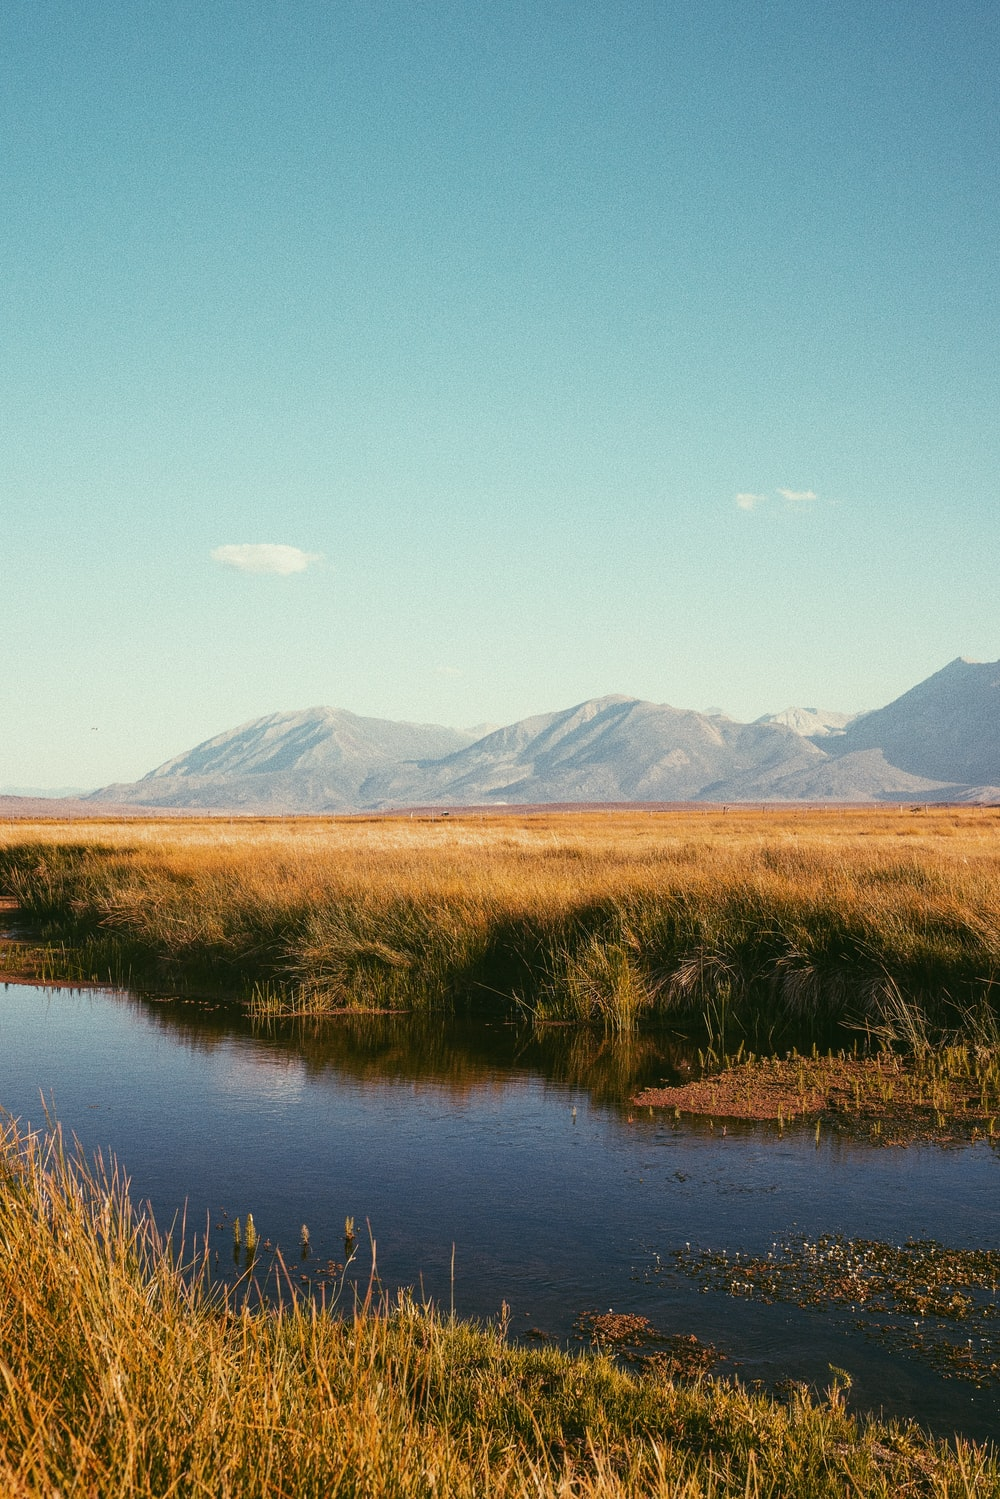 brown grass field near lake and mountains during daytime